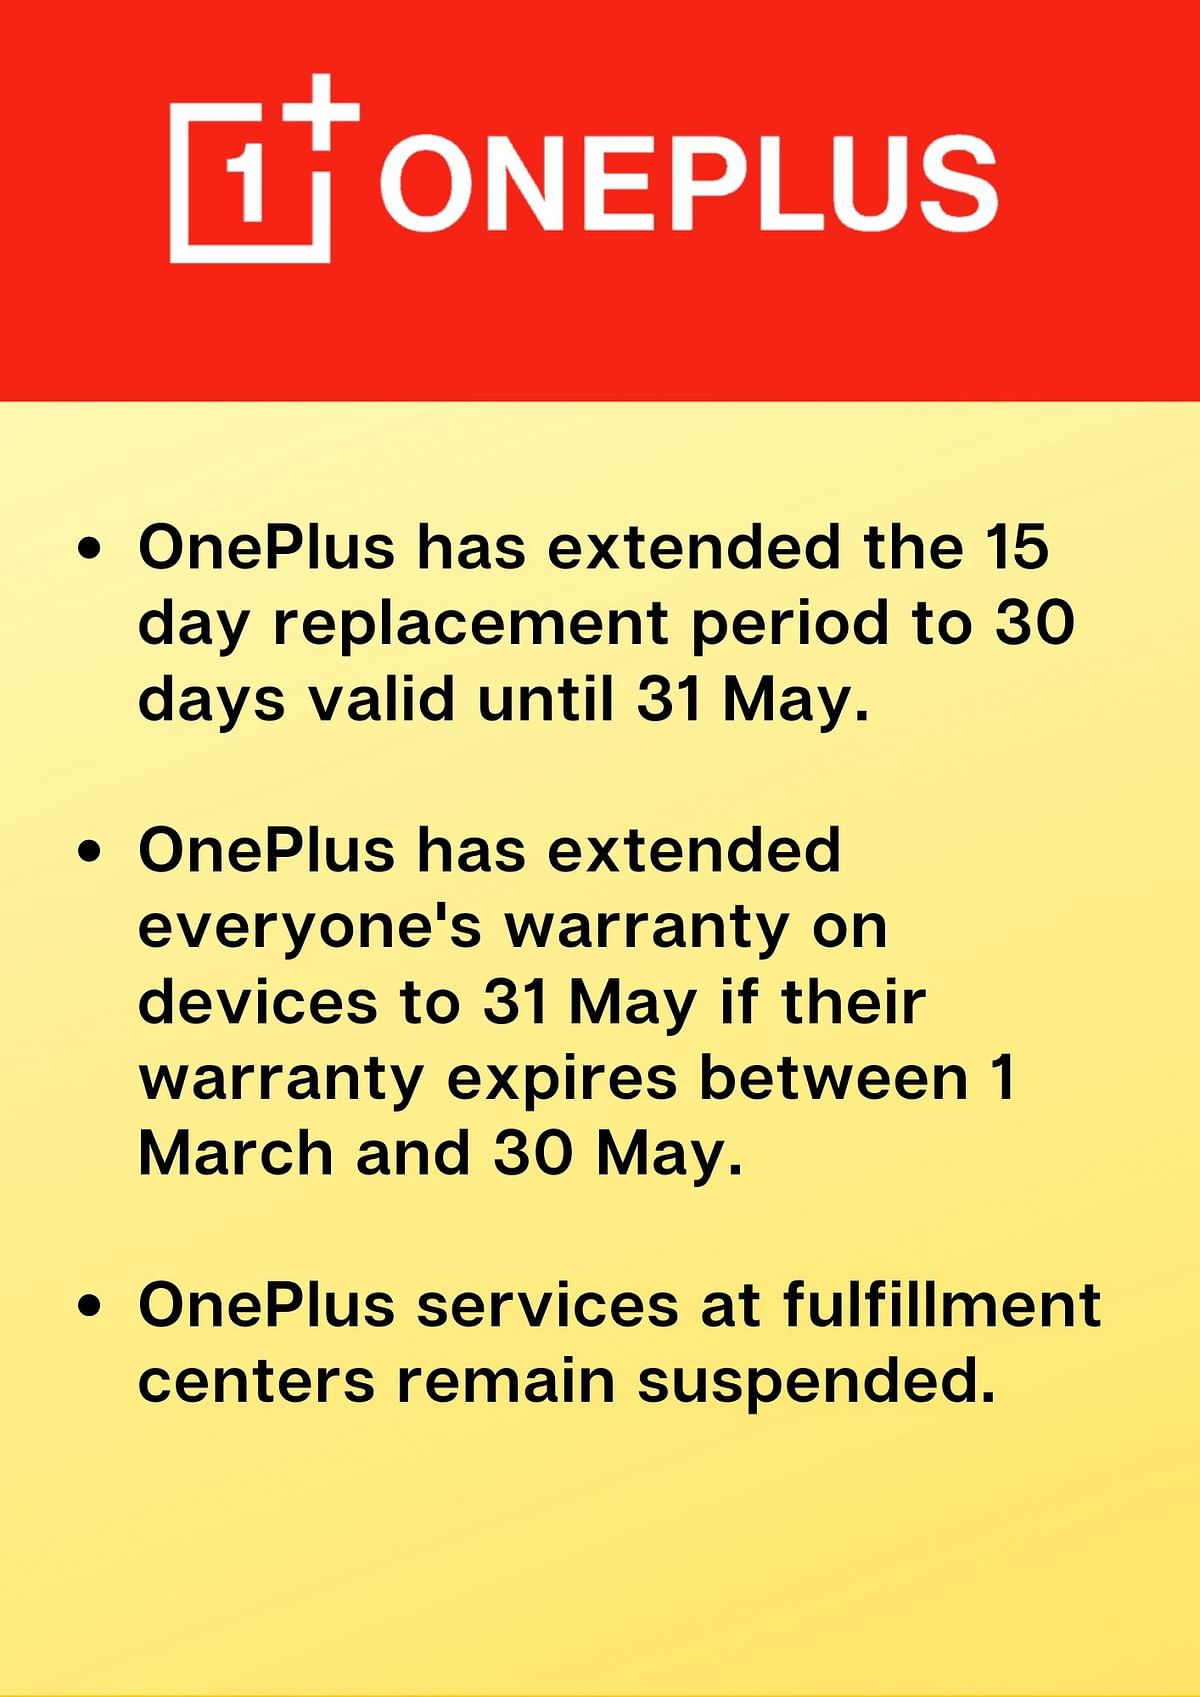 OnePlus announced an extension for all its devices till 31 May.